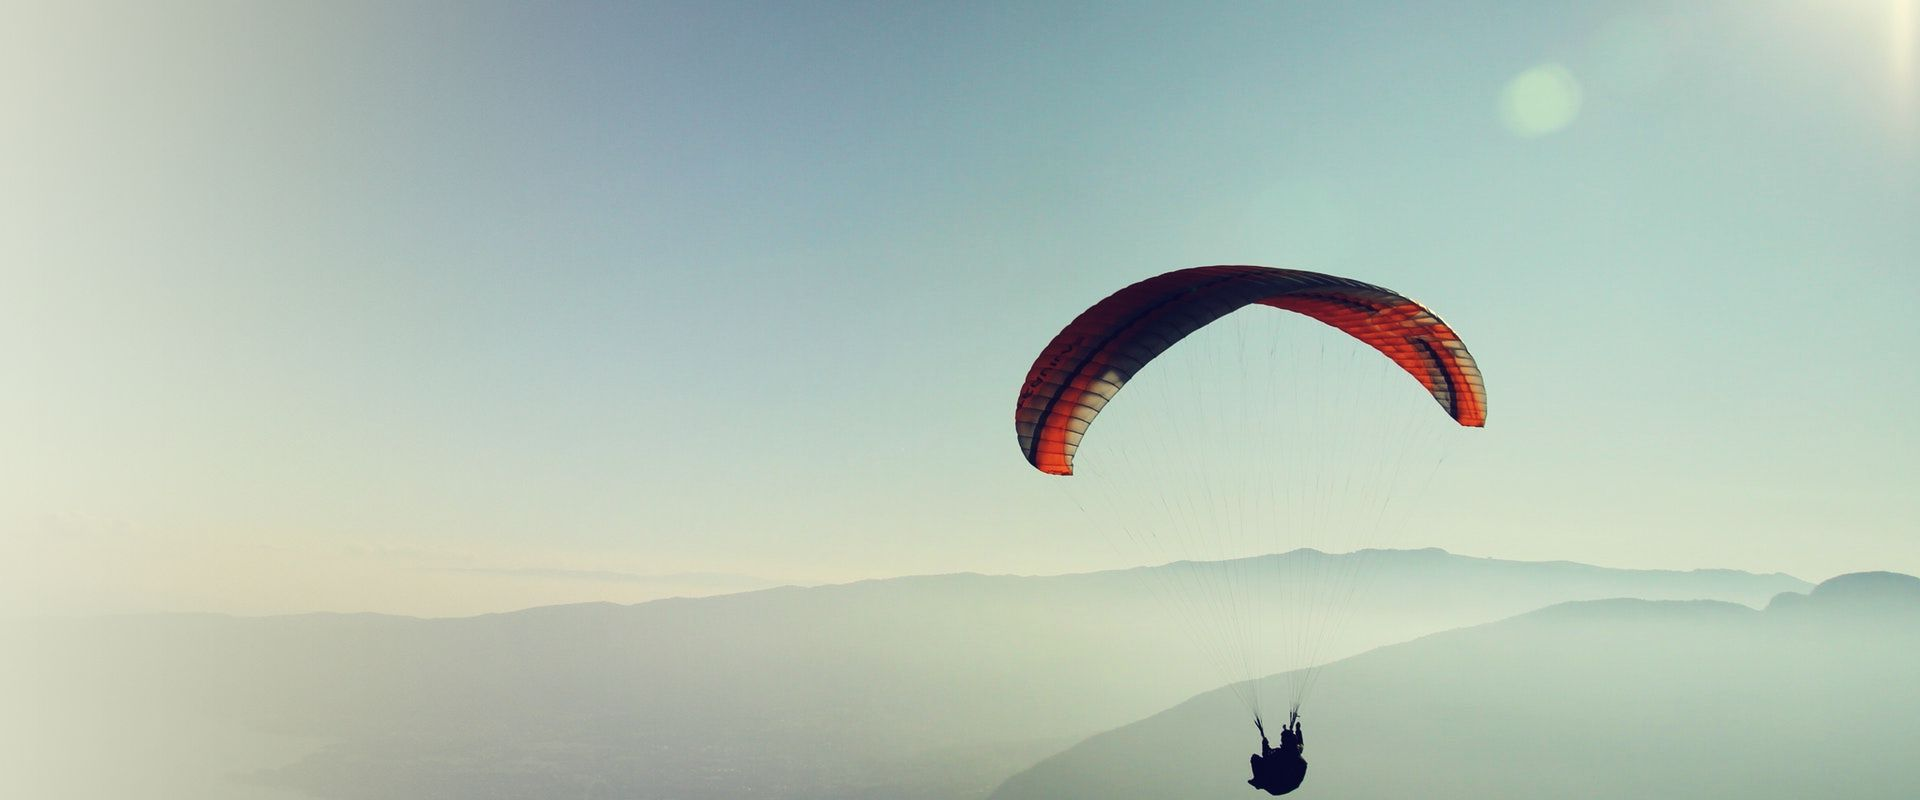 How high can paraglider go <span>We are constantly flying higher</span>